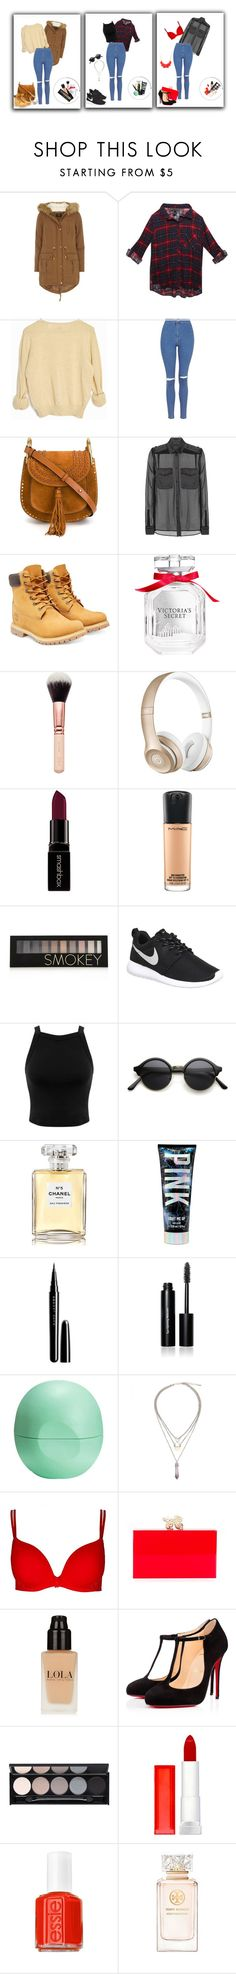 """""""Untitled #16"""" by smajicelma ❤ liked on Polyvore featuring Dorothy Perkins, Wet Seal, Topshop, Chloé, Tom Ford, Timberland, Victoria's Secret, Beats by Dr. Dre, Smashbox and MAC Cosmetics"""